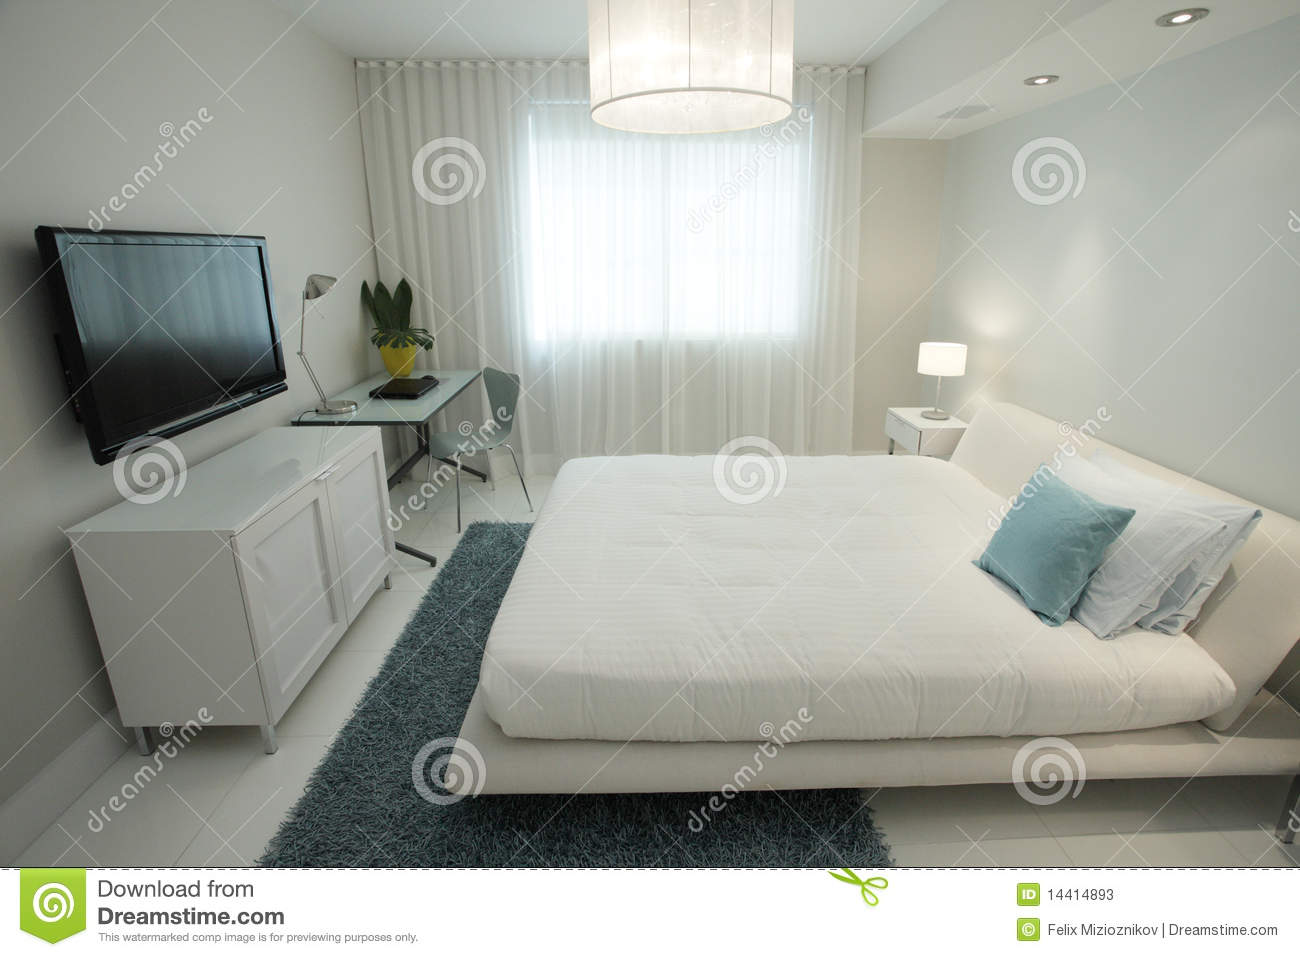 Camera da letto con una televisione di hd fotografie stock immagine 14414893 - Tv in camera da letto ...